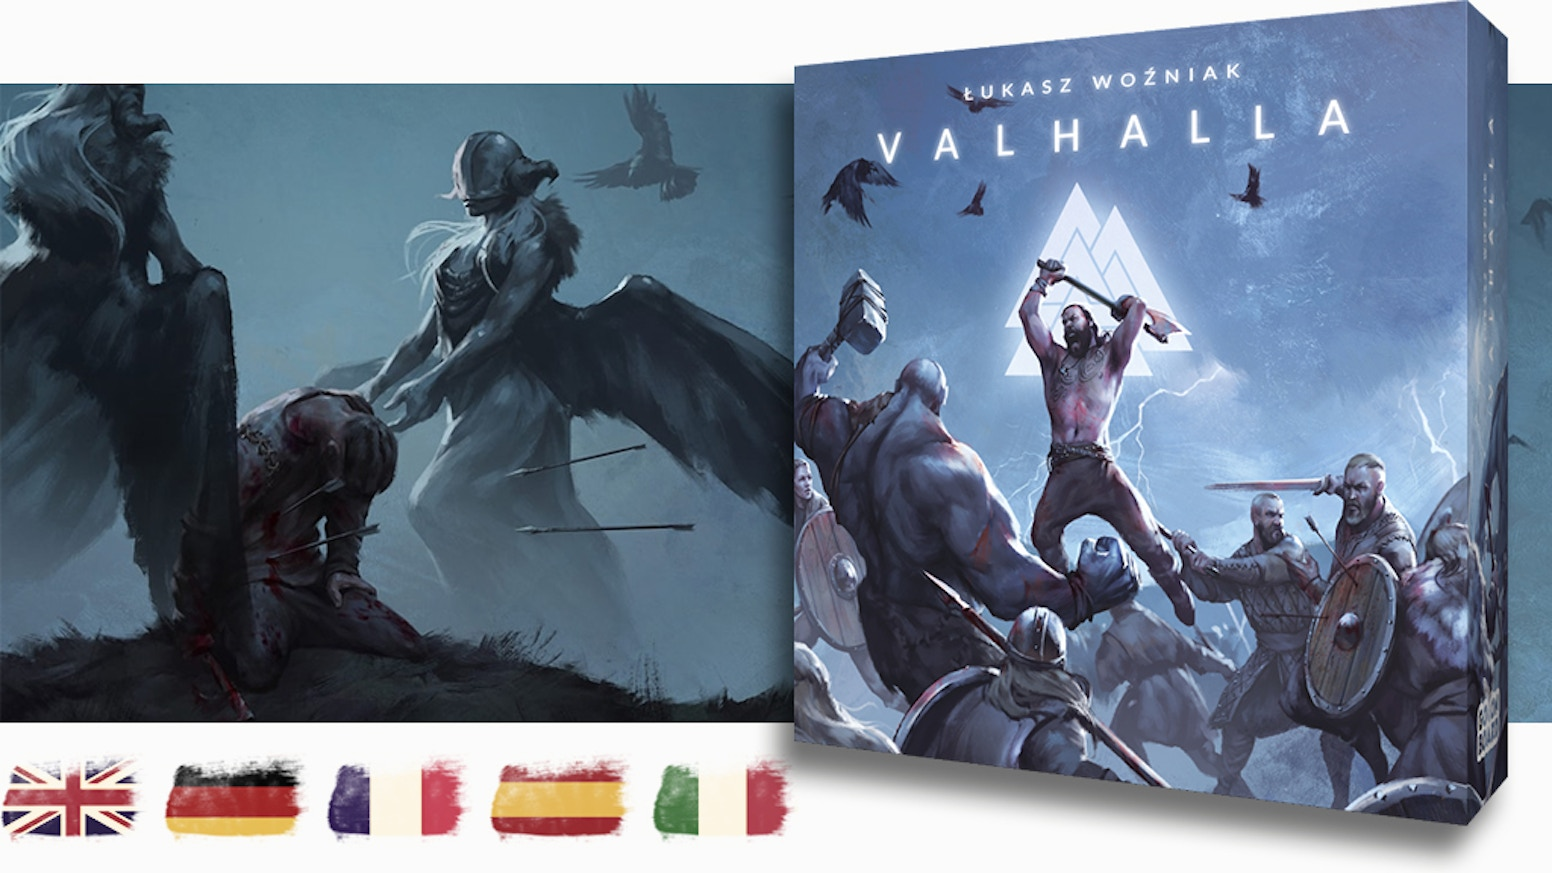 Choose a Jarl, build a team and use special weapon dice to defeat your enemies and win the ultimate glory: a seat in halls of Valhalla!